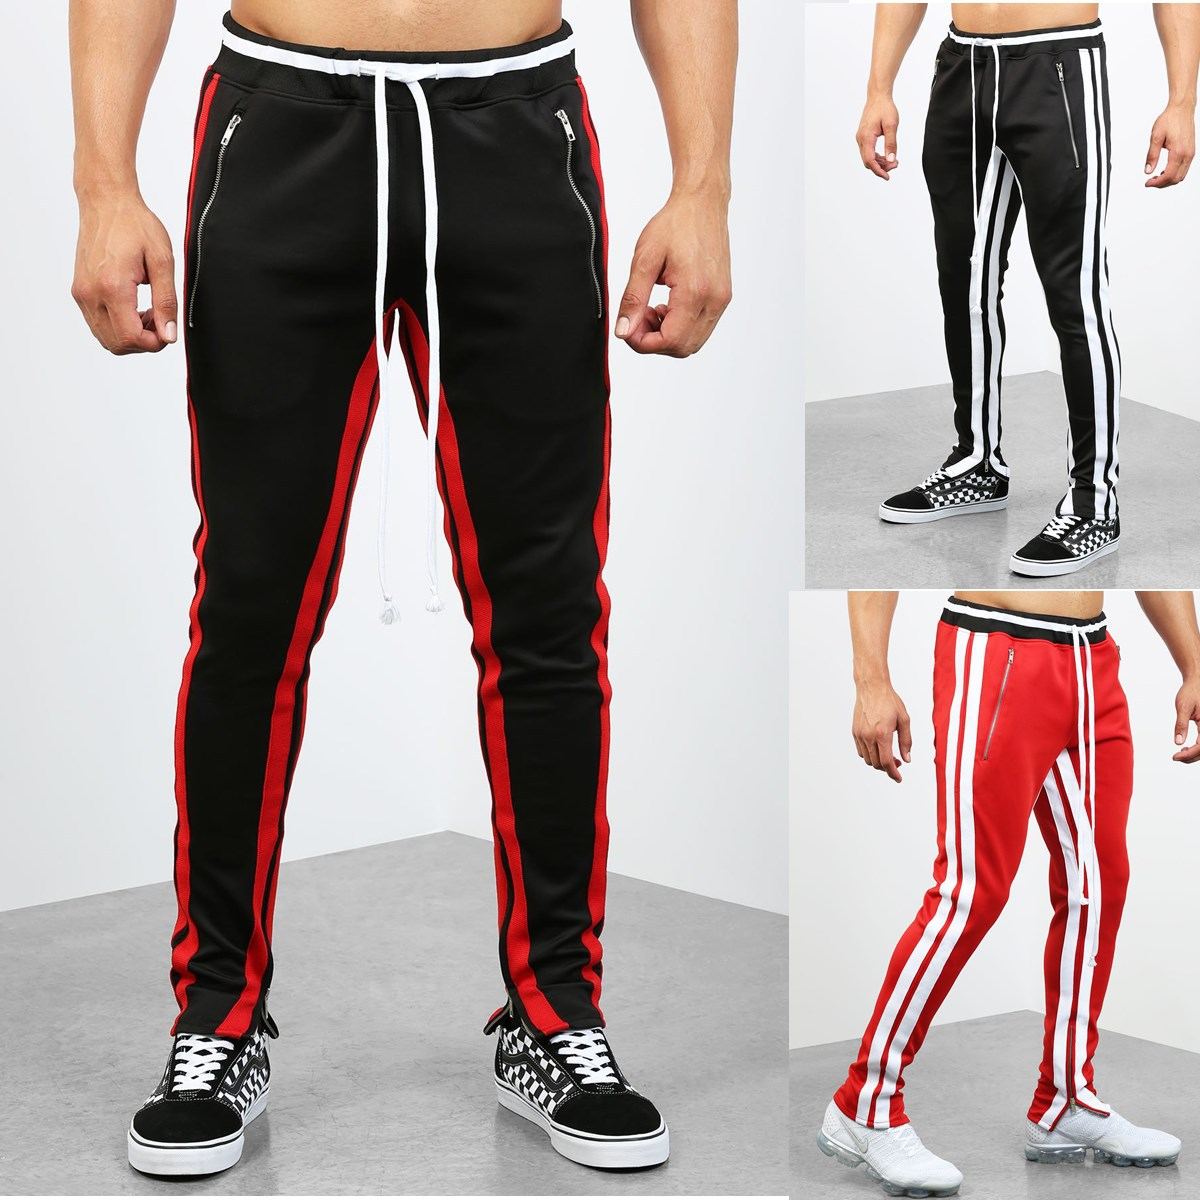 Autumn And Winter Hot Selling Men Casual Athletic Pants Hip Hop Fitness Foot Mouth Zipper Pocket Velcro Bag Joint Trousers